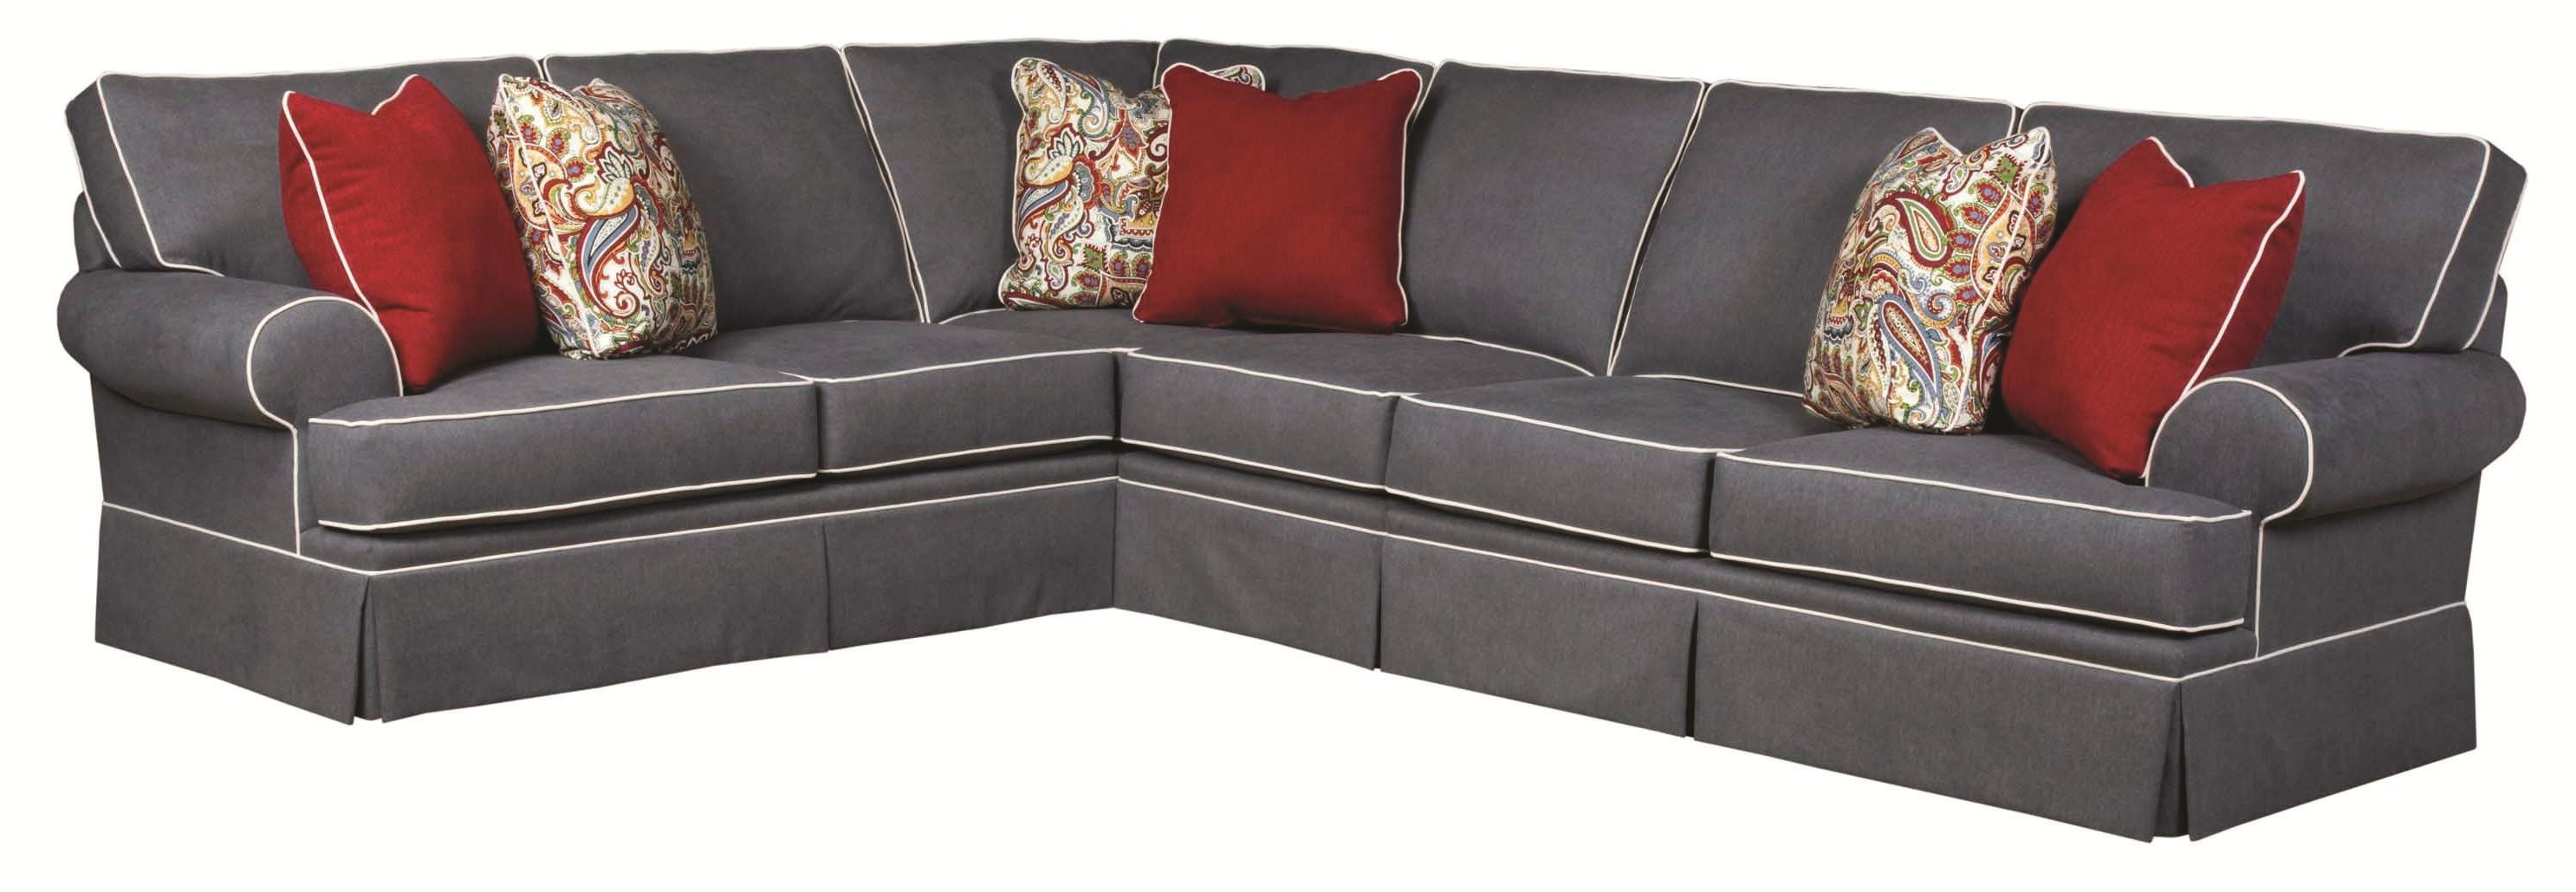 Favorite Broyhill Furniture Emily Traditional 3 Piece Sectional Sofa With Within Duluth Mn Sectional Sofas (View 20 of 20)